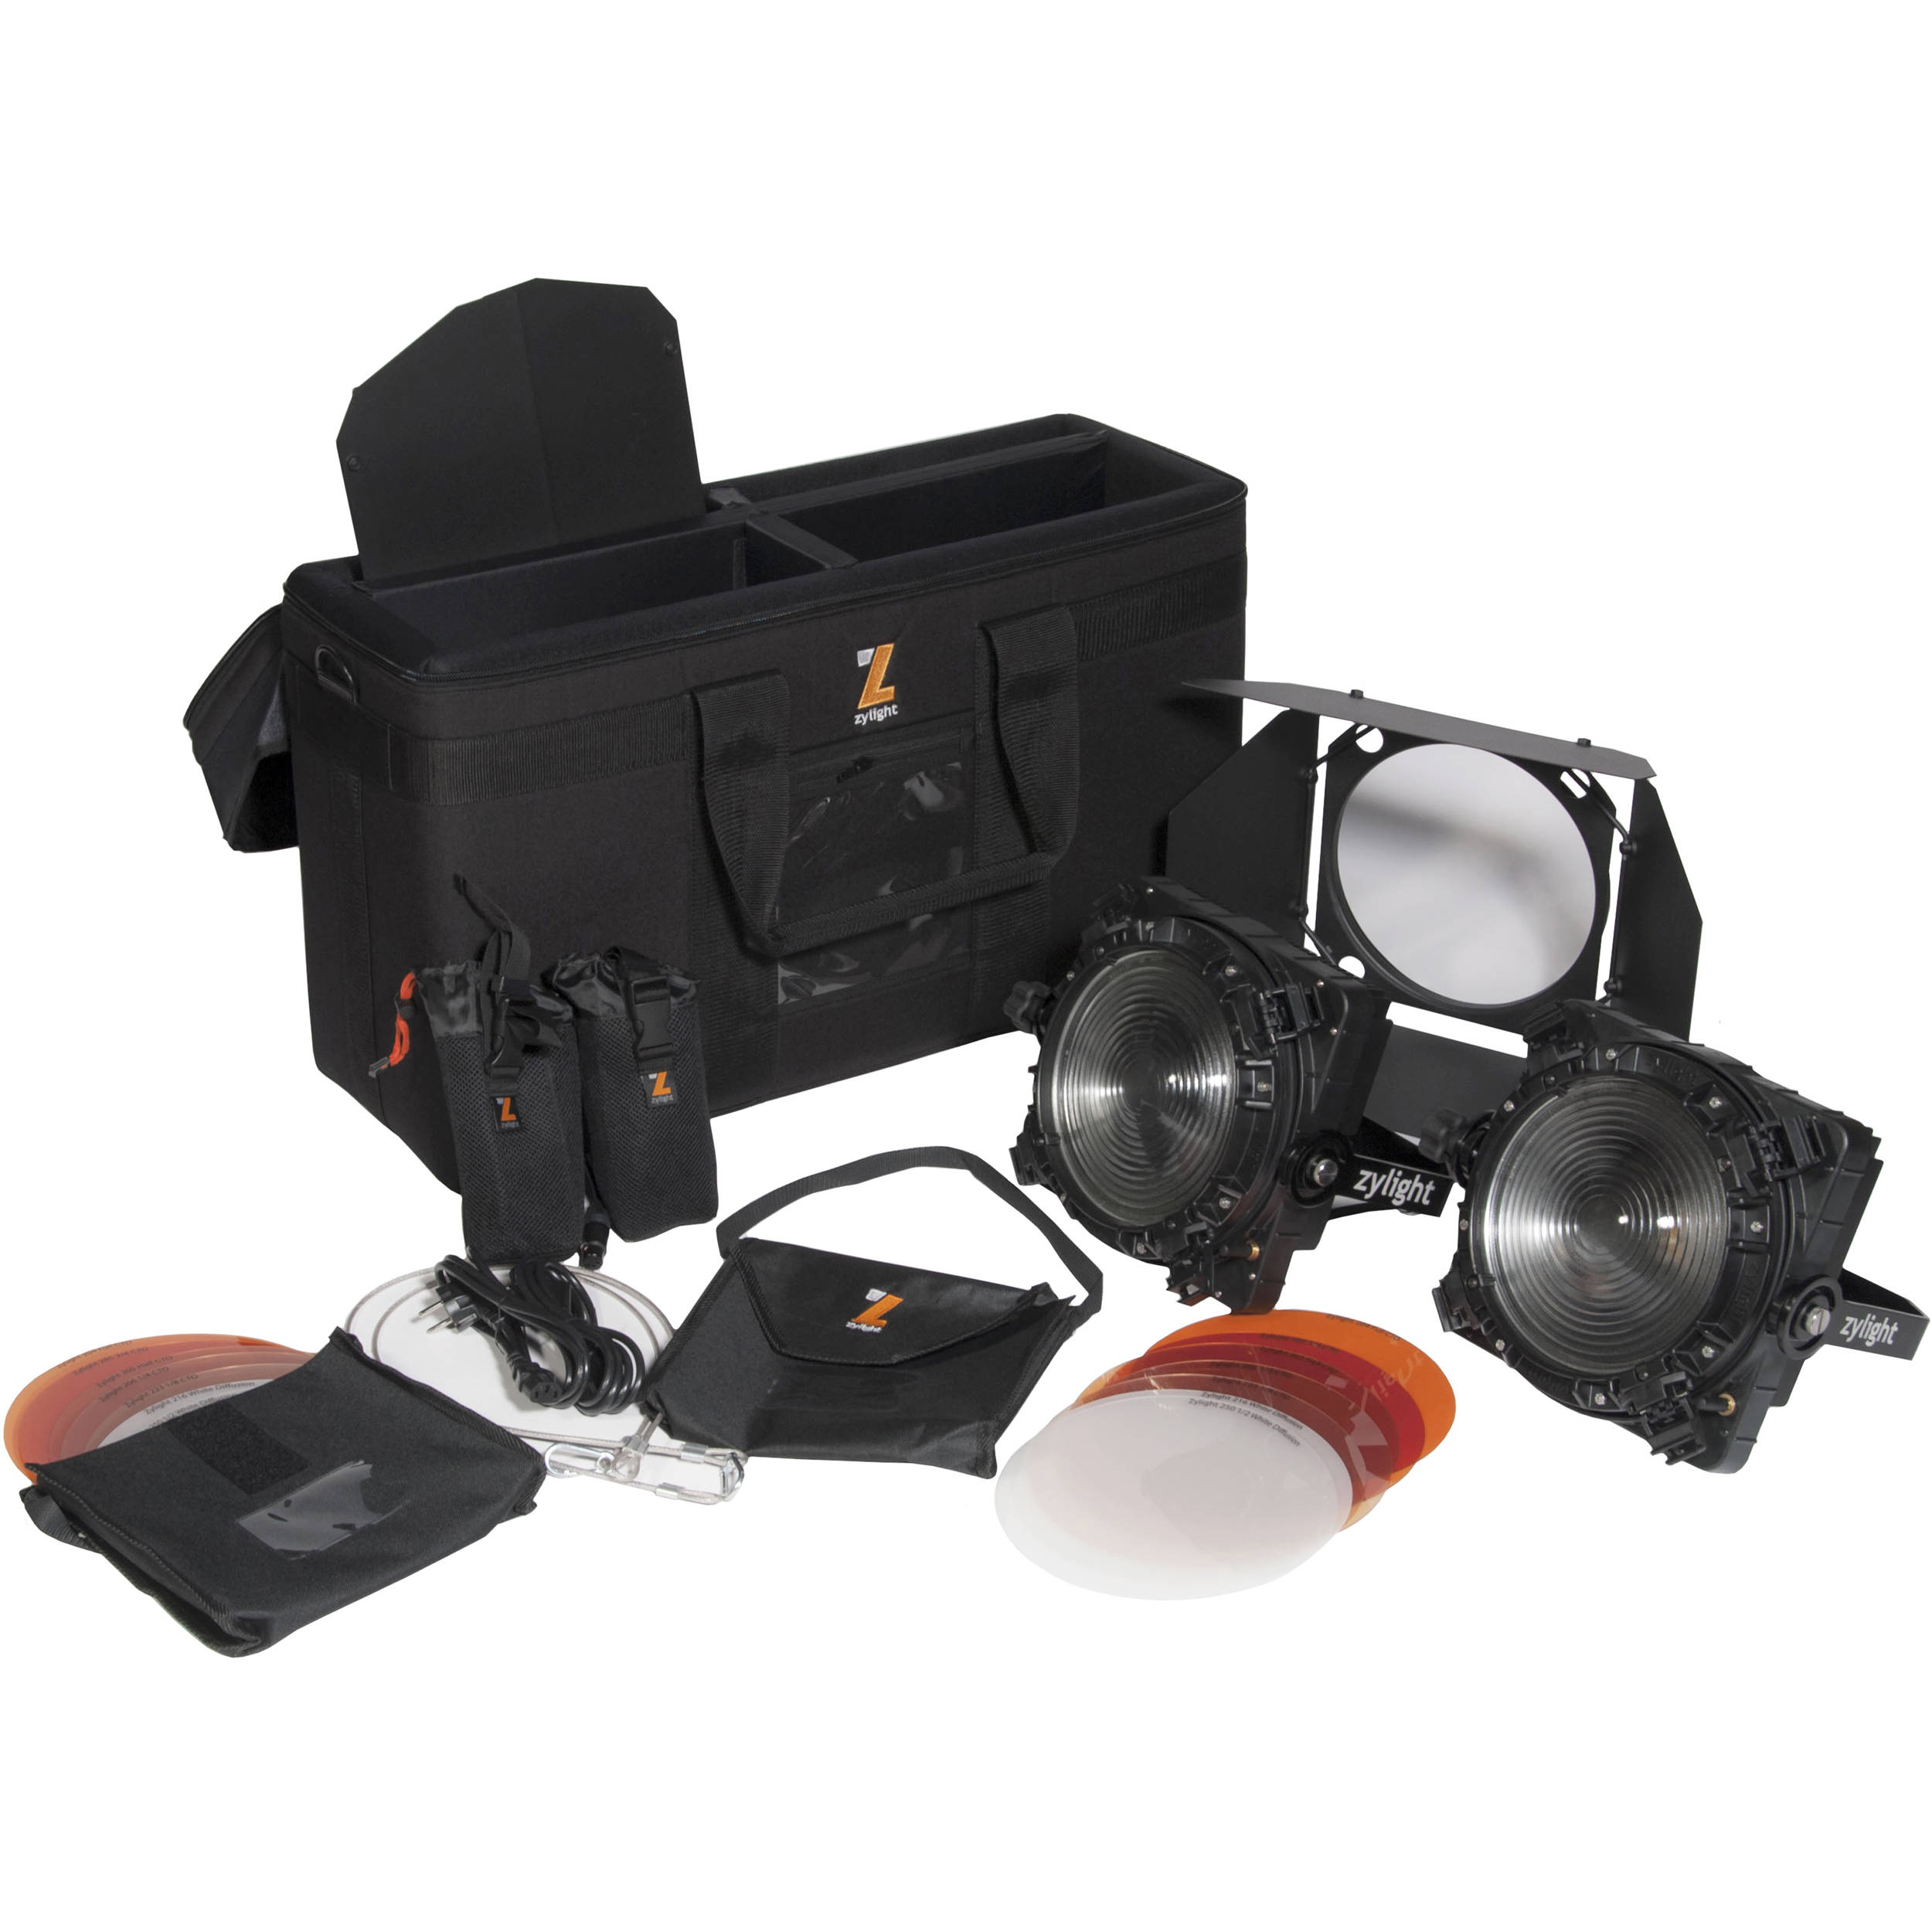 Zylight F8 D 100 Led Fresnel Dual Head Eng Kit With Gold